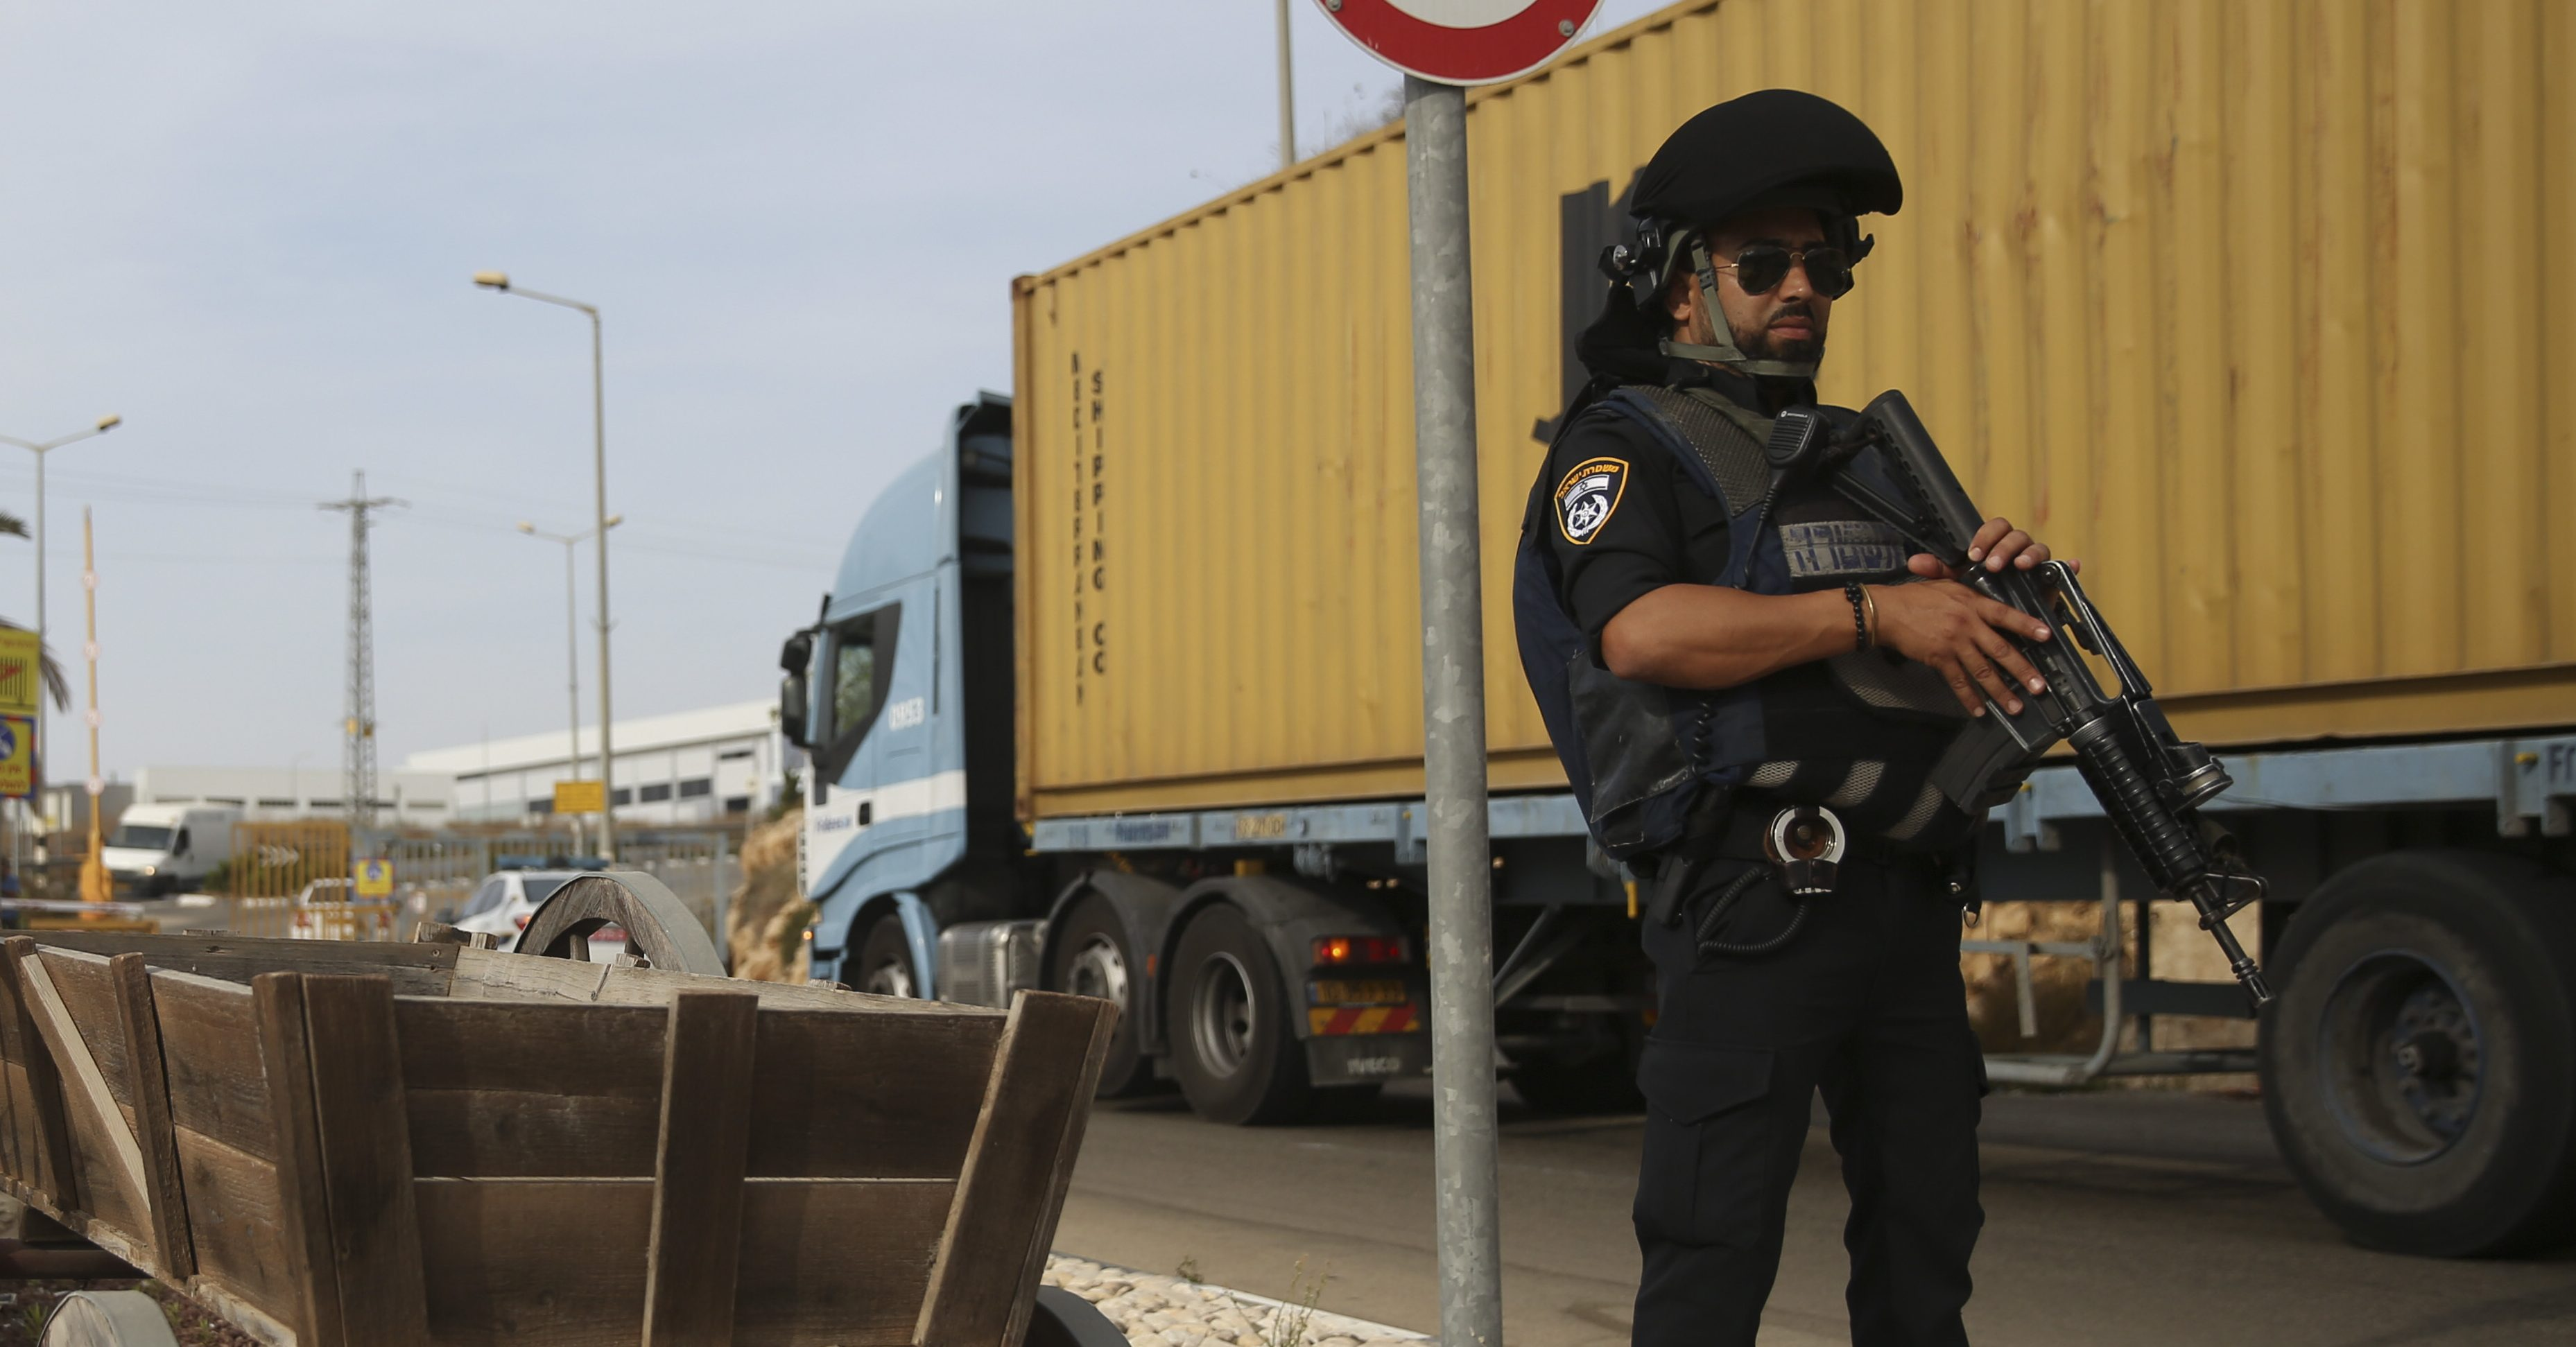 Israeli policemen stand at the entrance of Barkan industrial zone in the West Bank